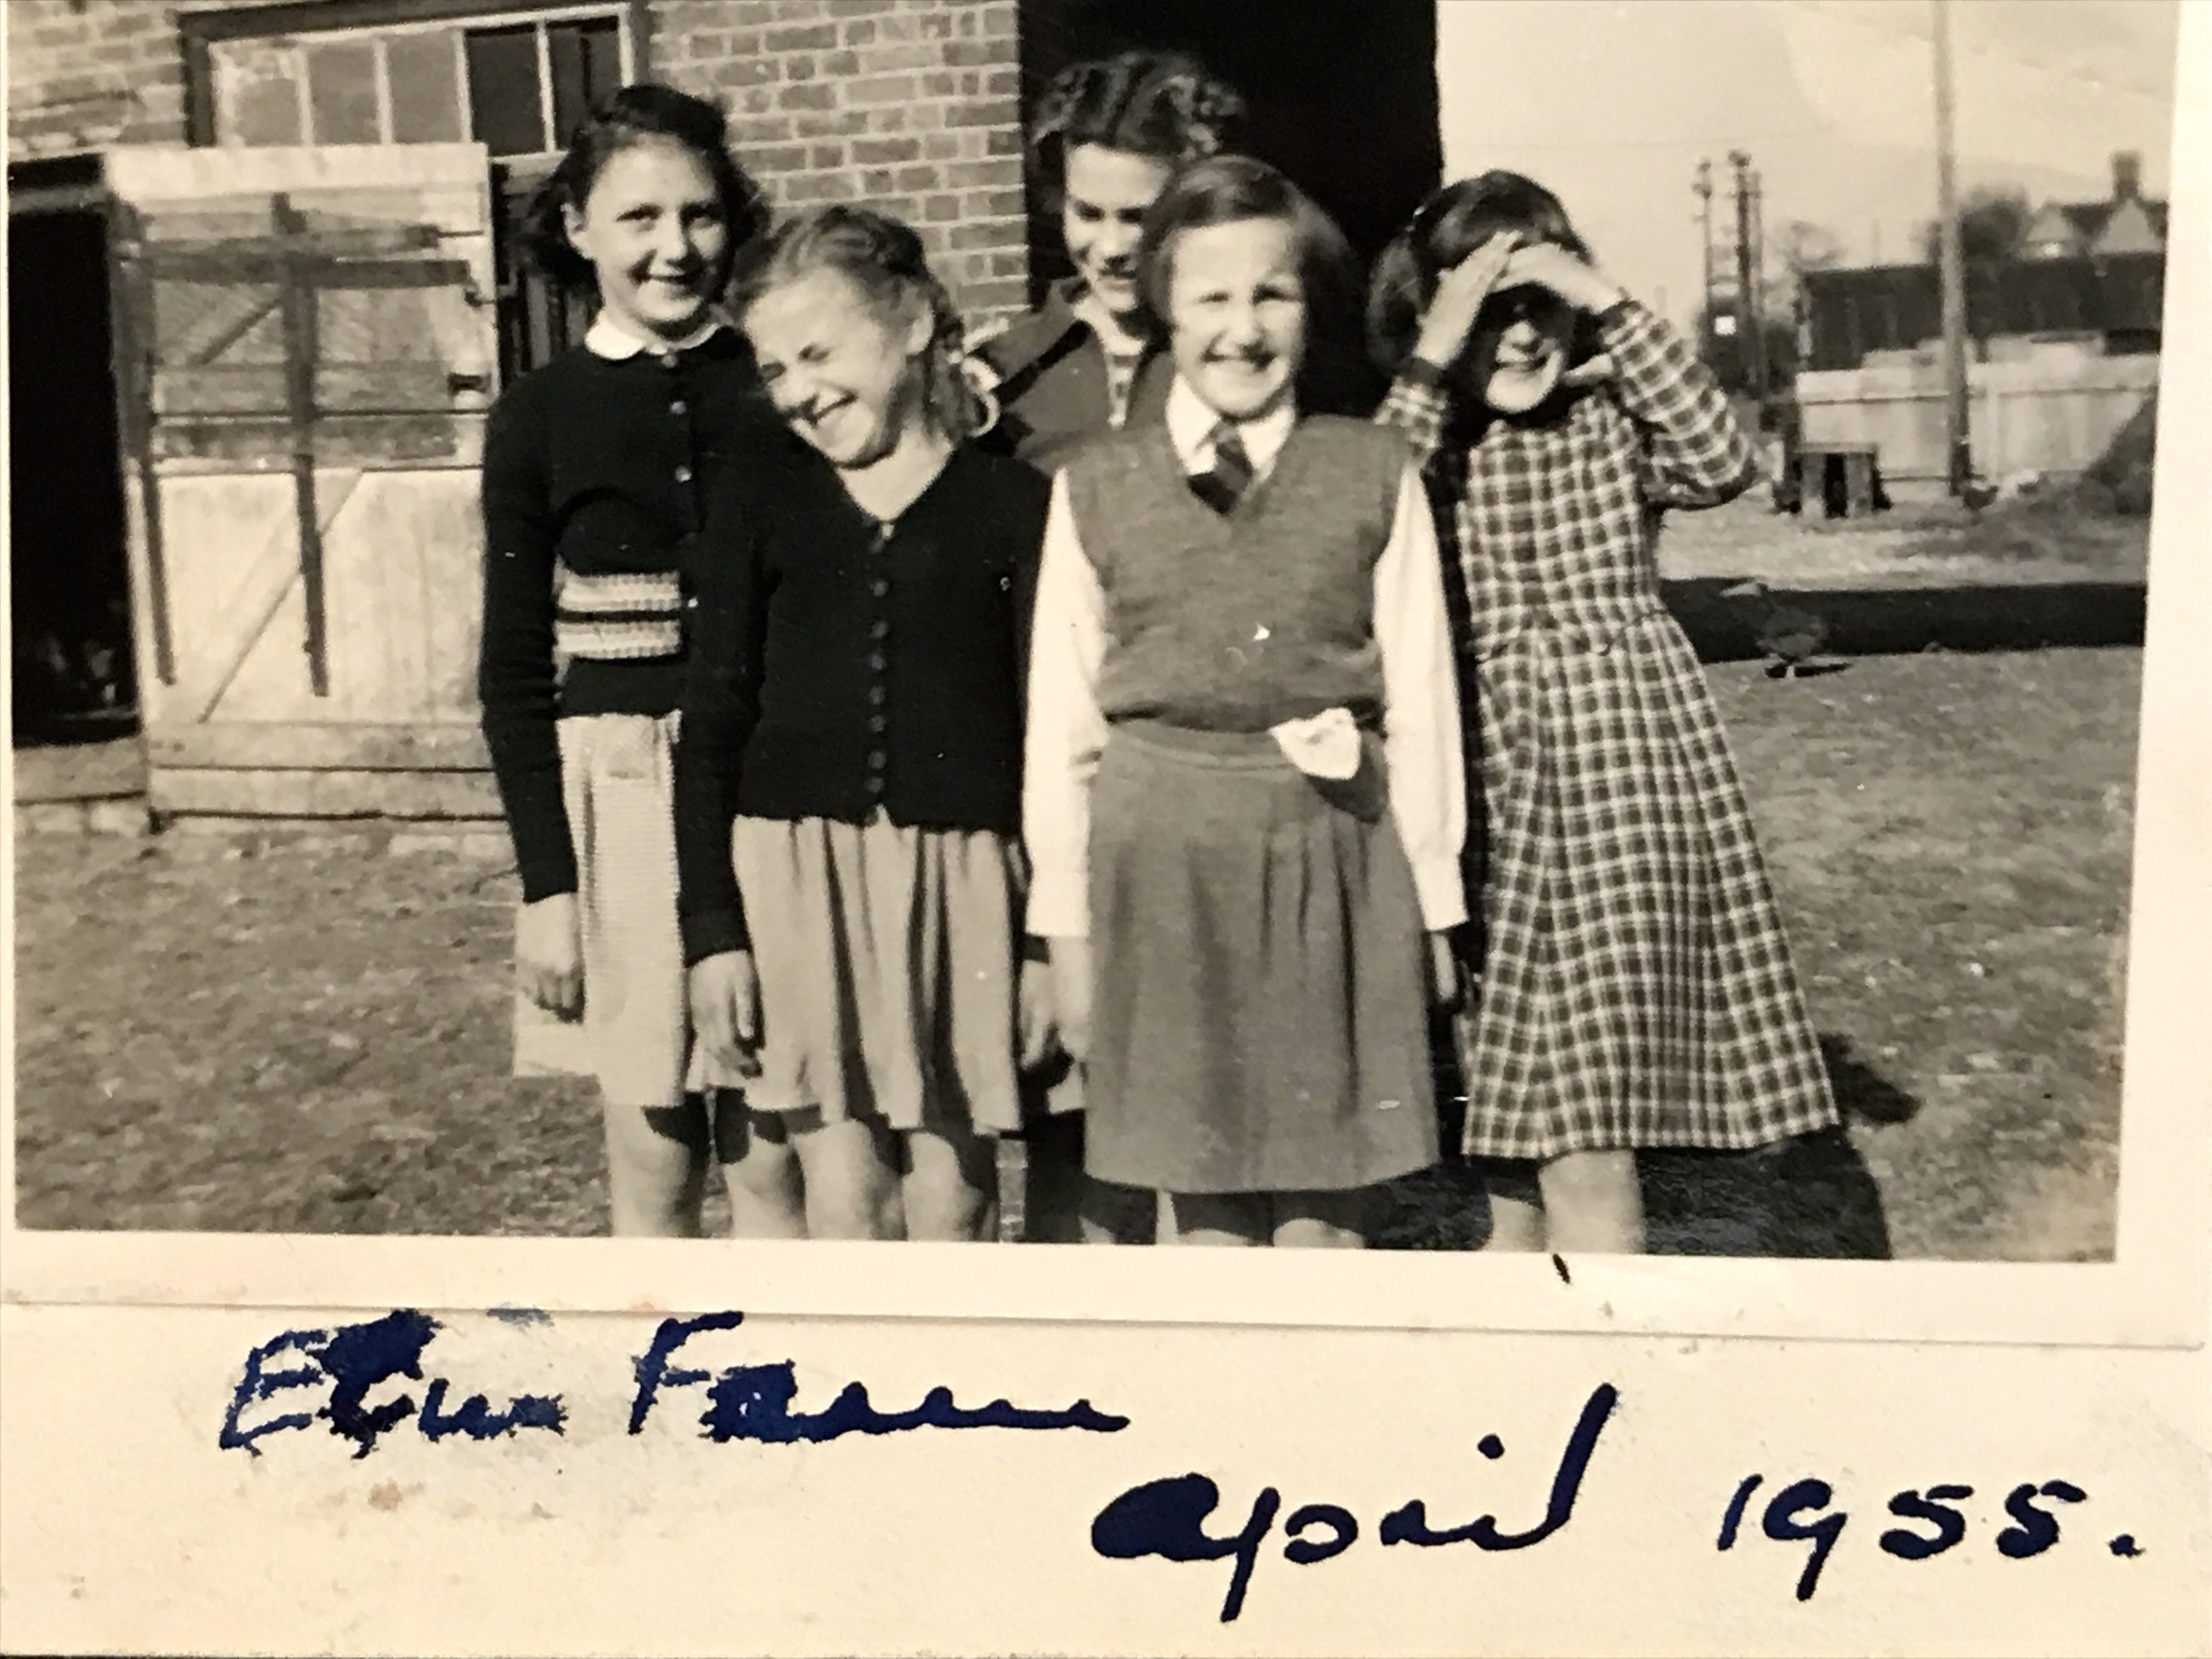 Sunday School girls visiting Elm Farm in 1955